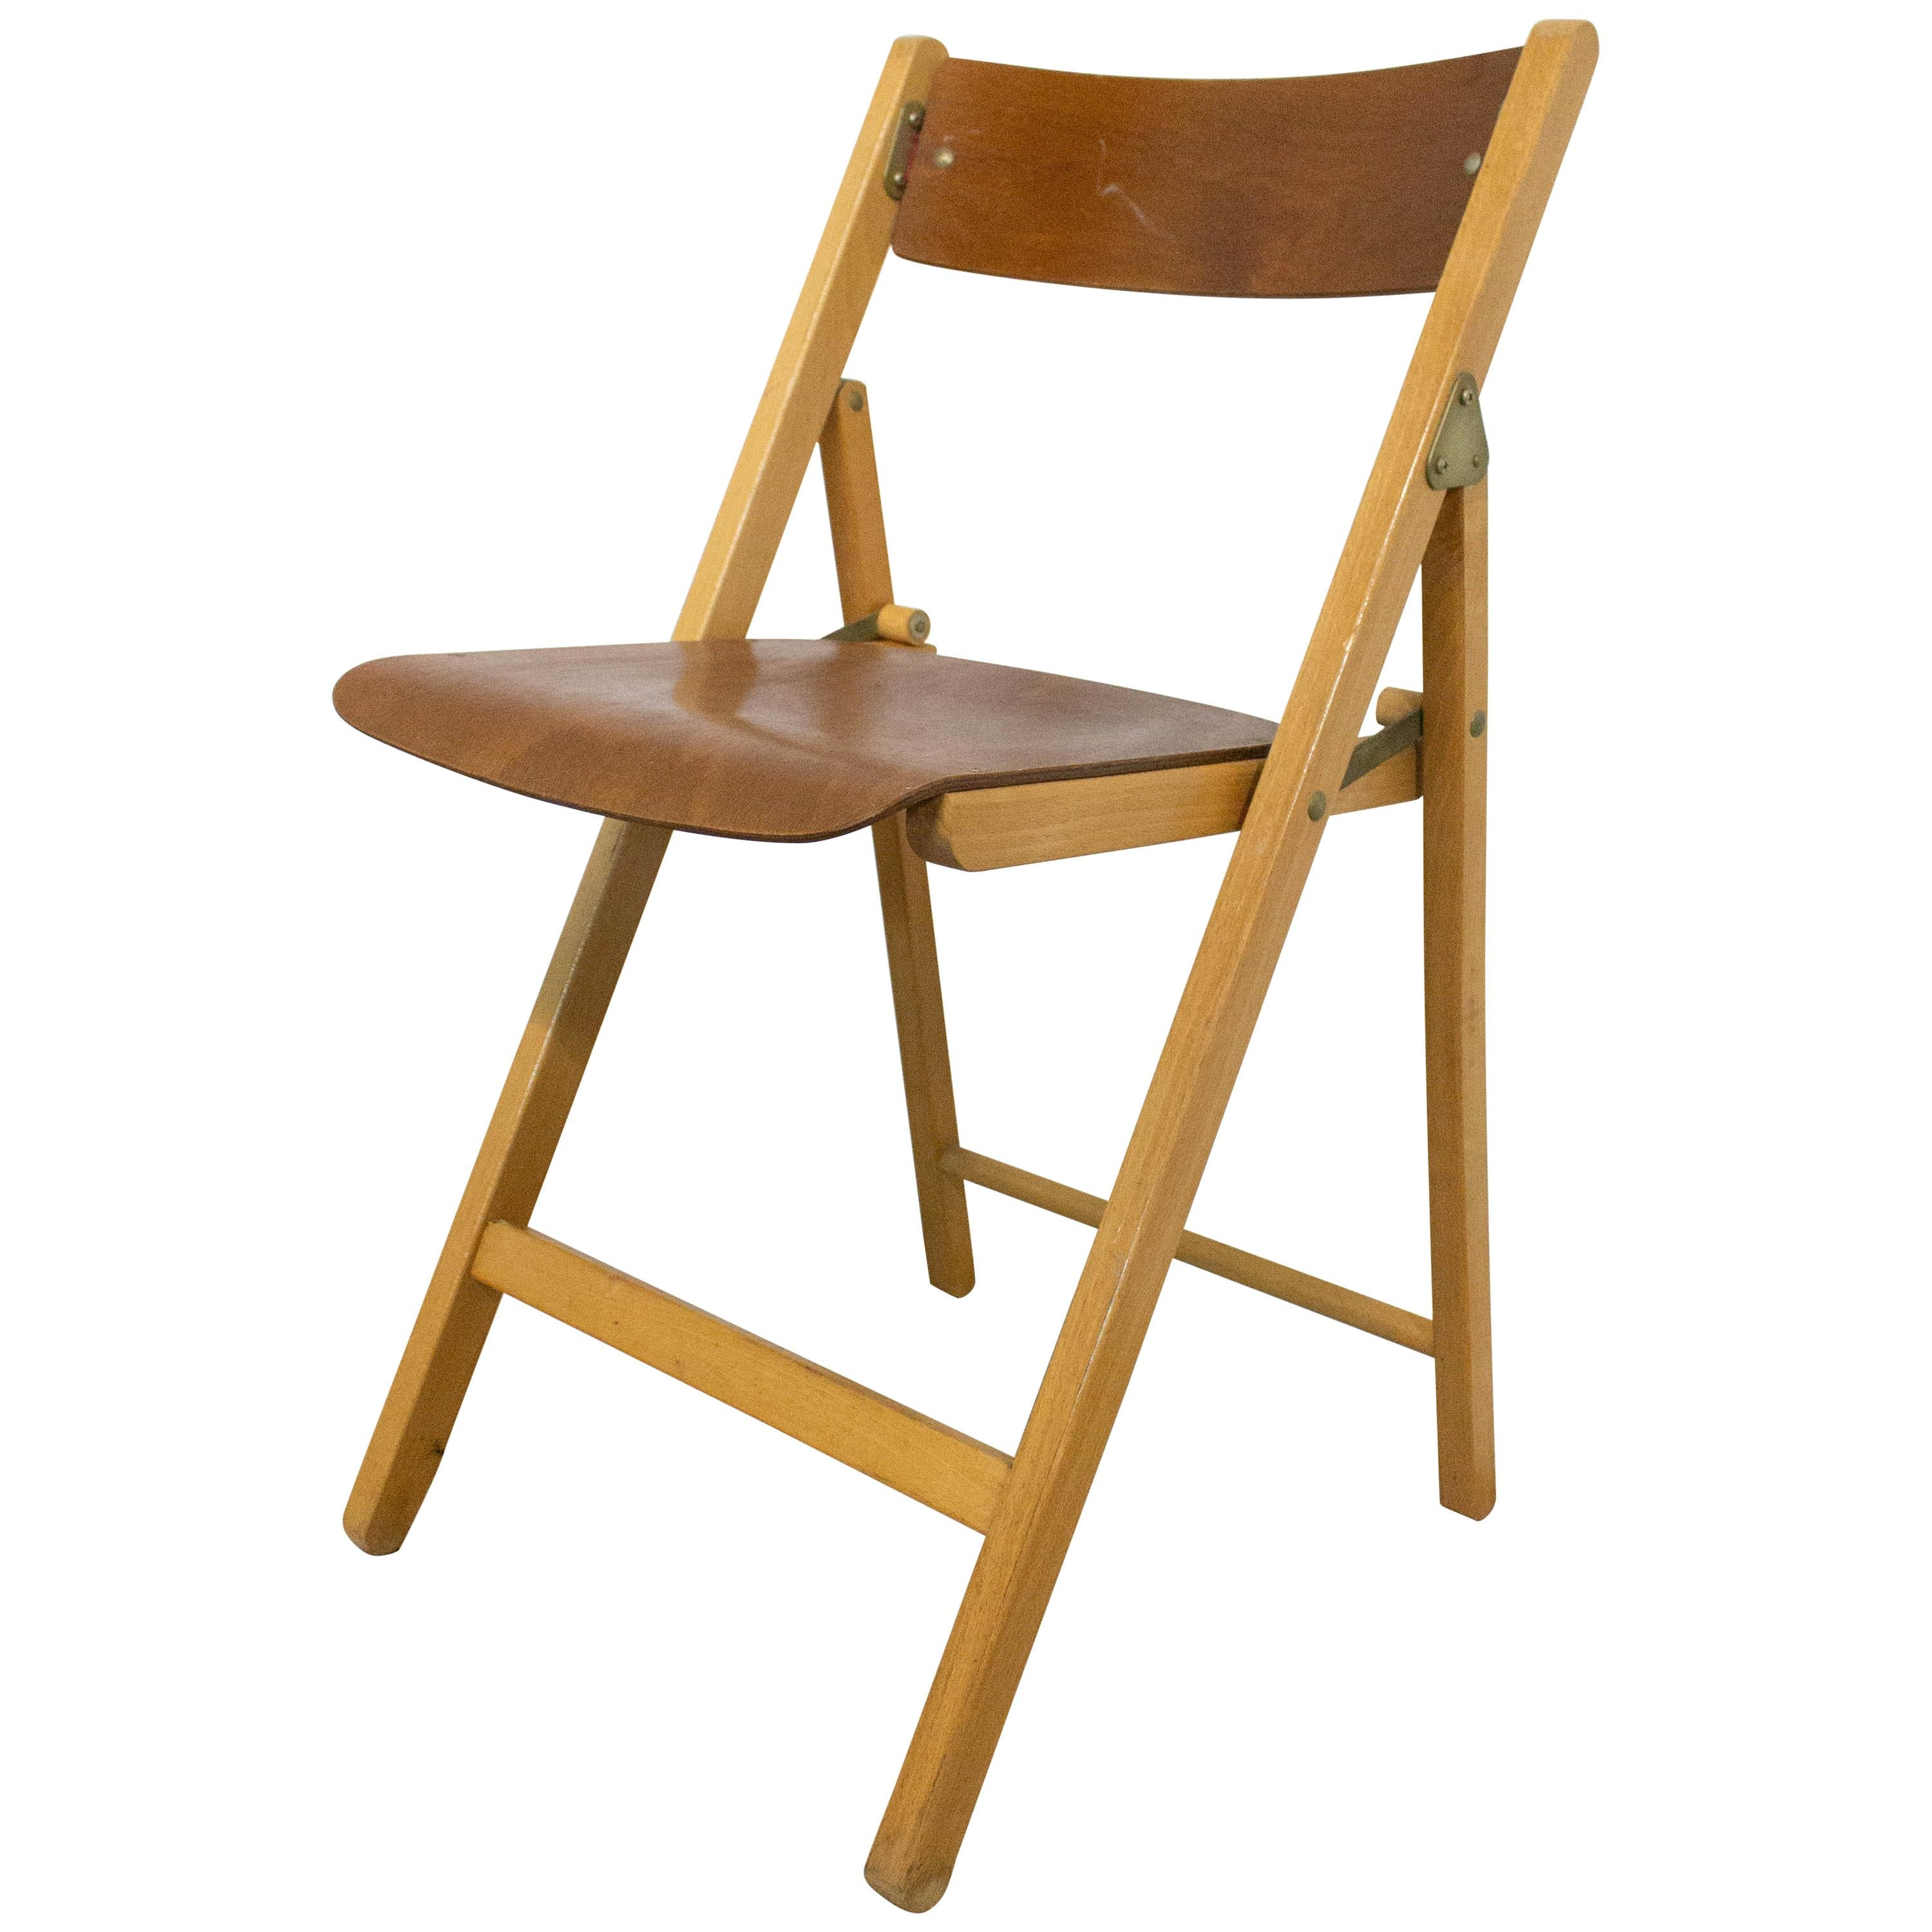 French Midcentury Wood Folding Chair, 1970